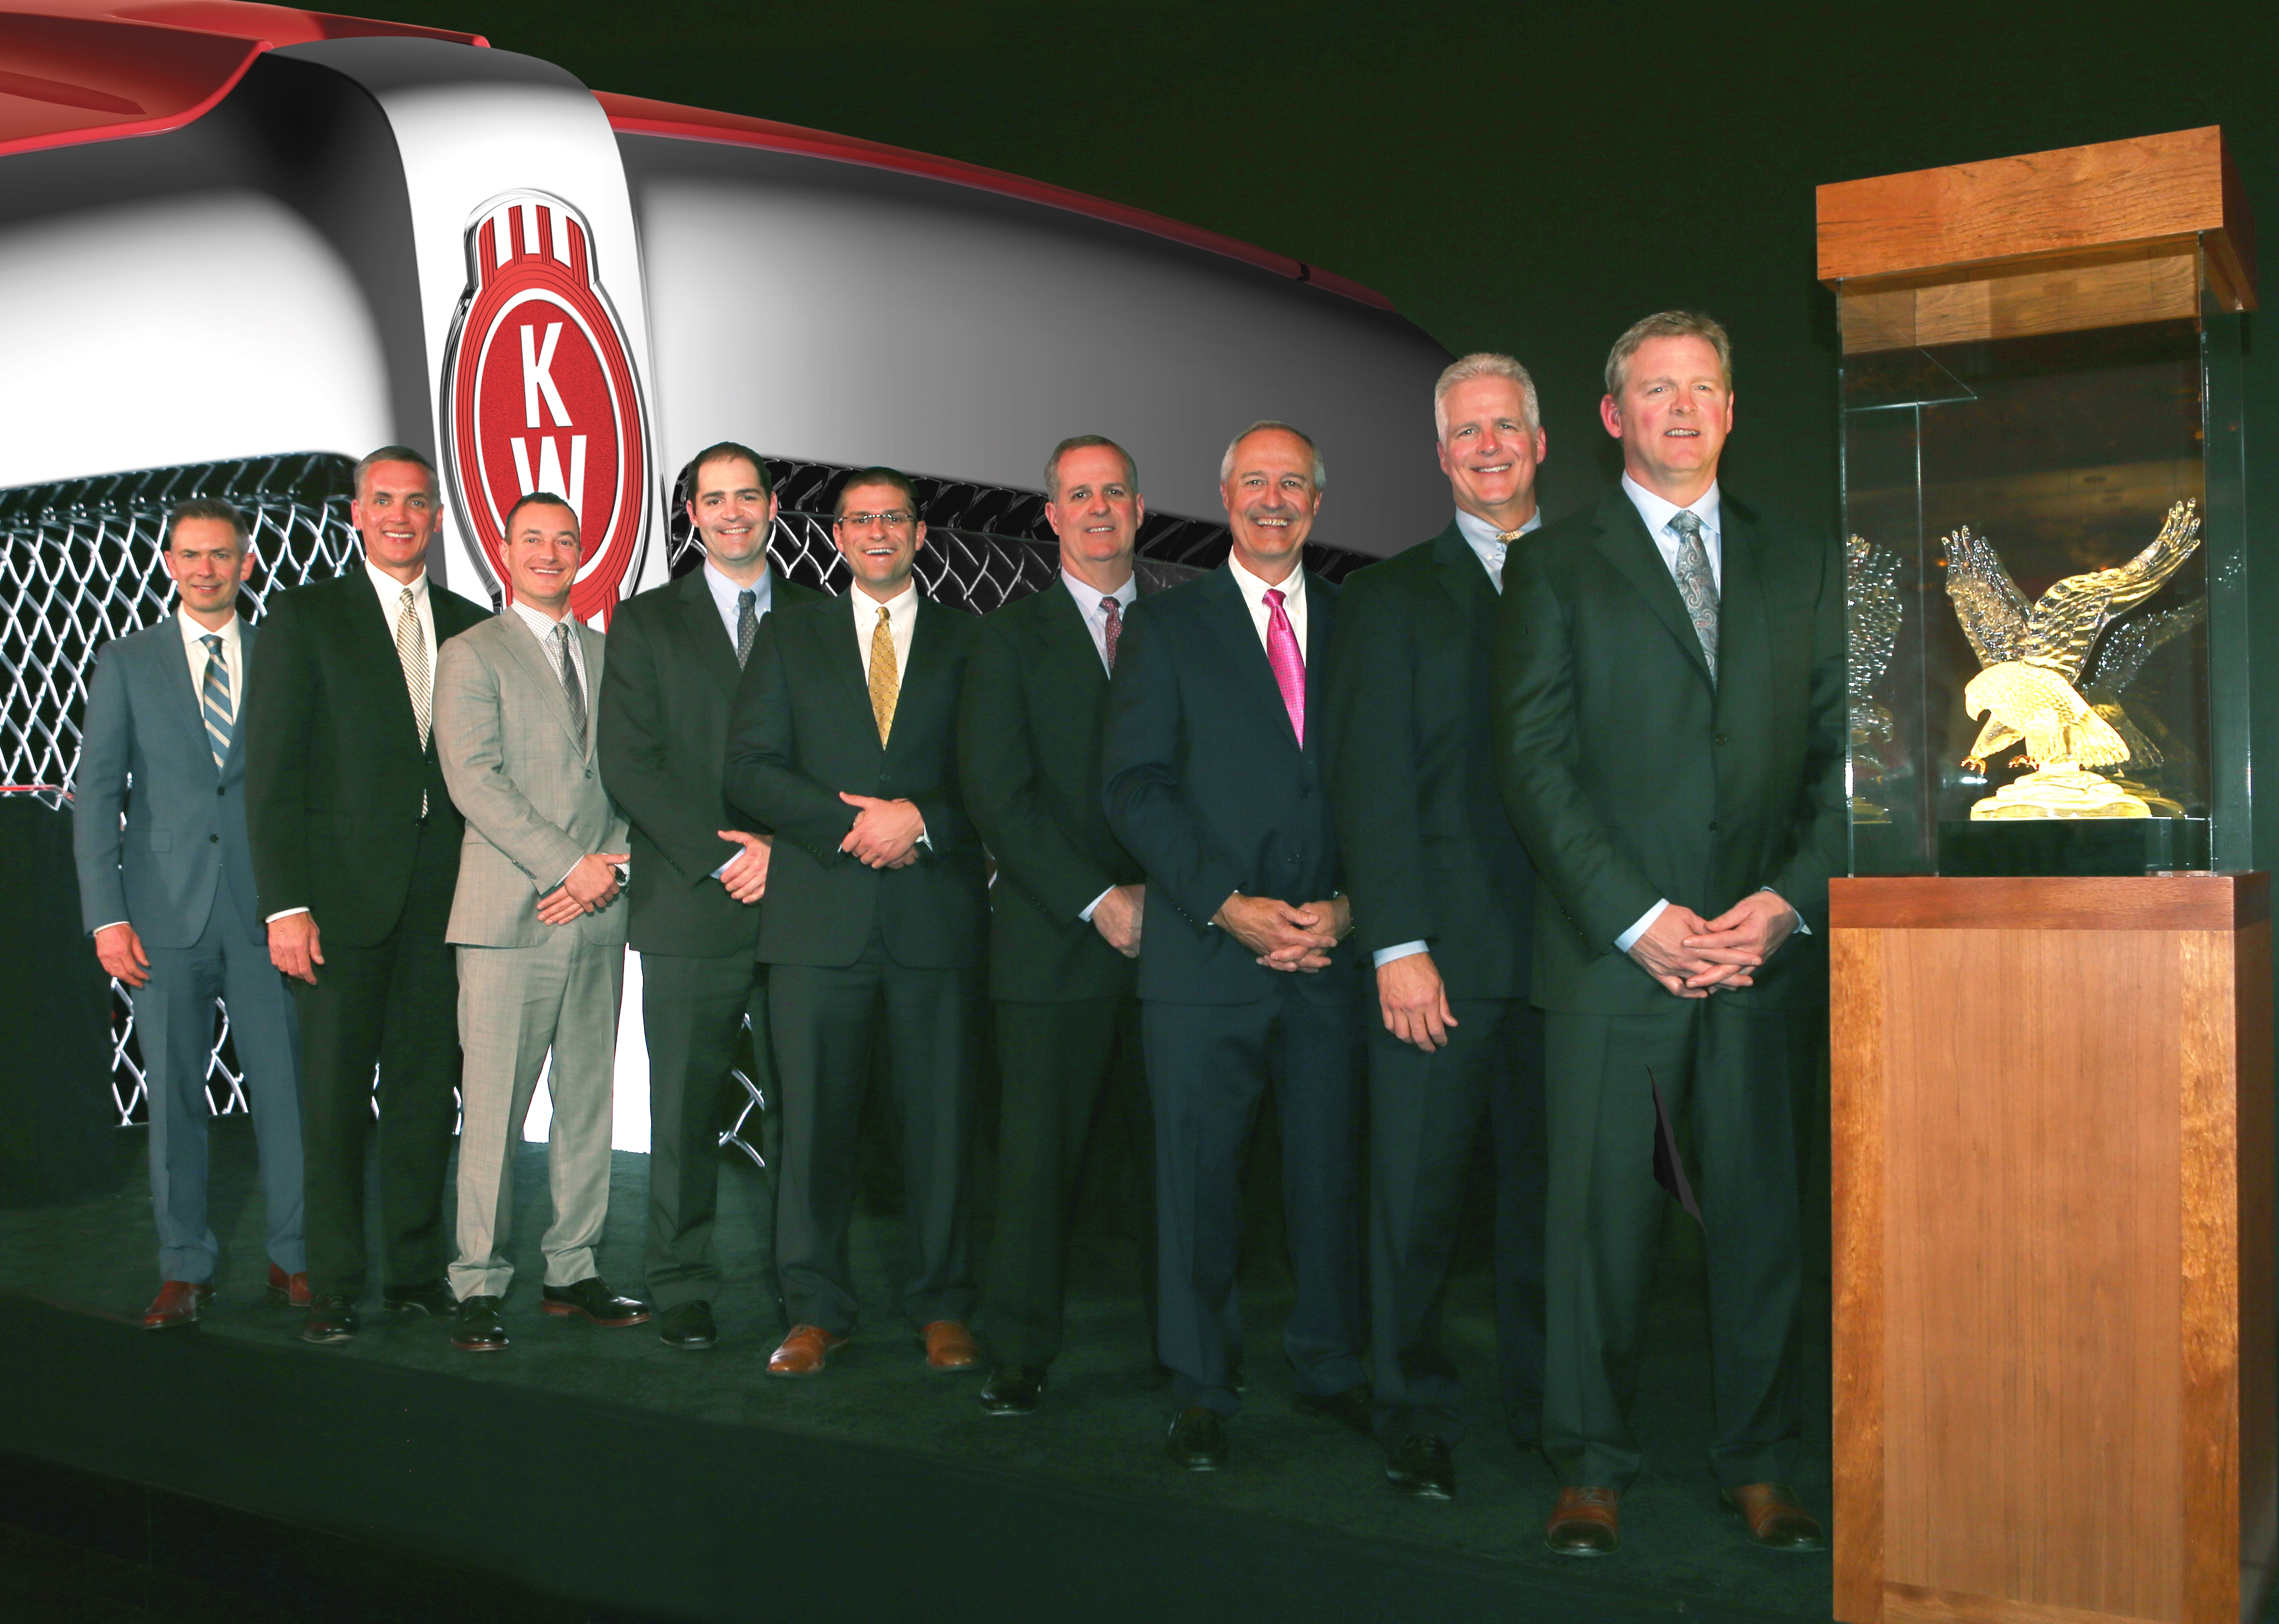 Kenworth Dealer of the Year Award for MHC Kenworth - Colorado